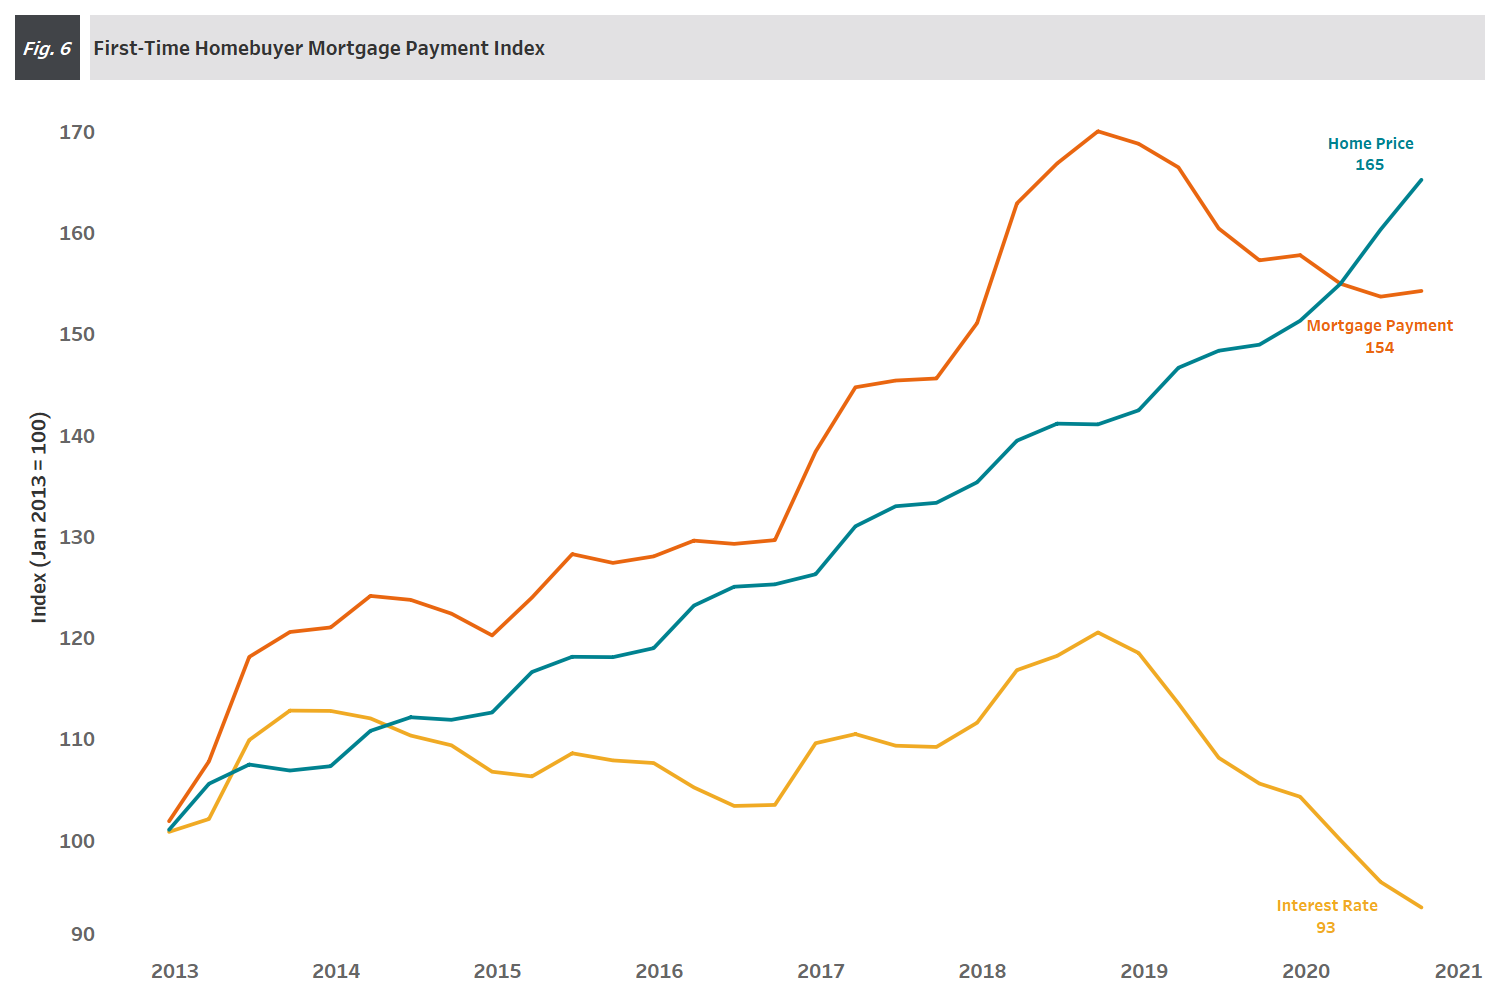 Chart: 4Q 2020 Figure 6 - First-Time Homebuyer Mortgage Payment Index